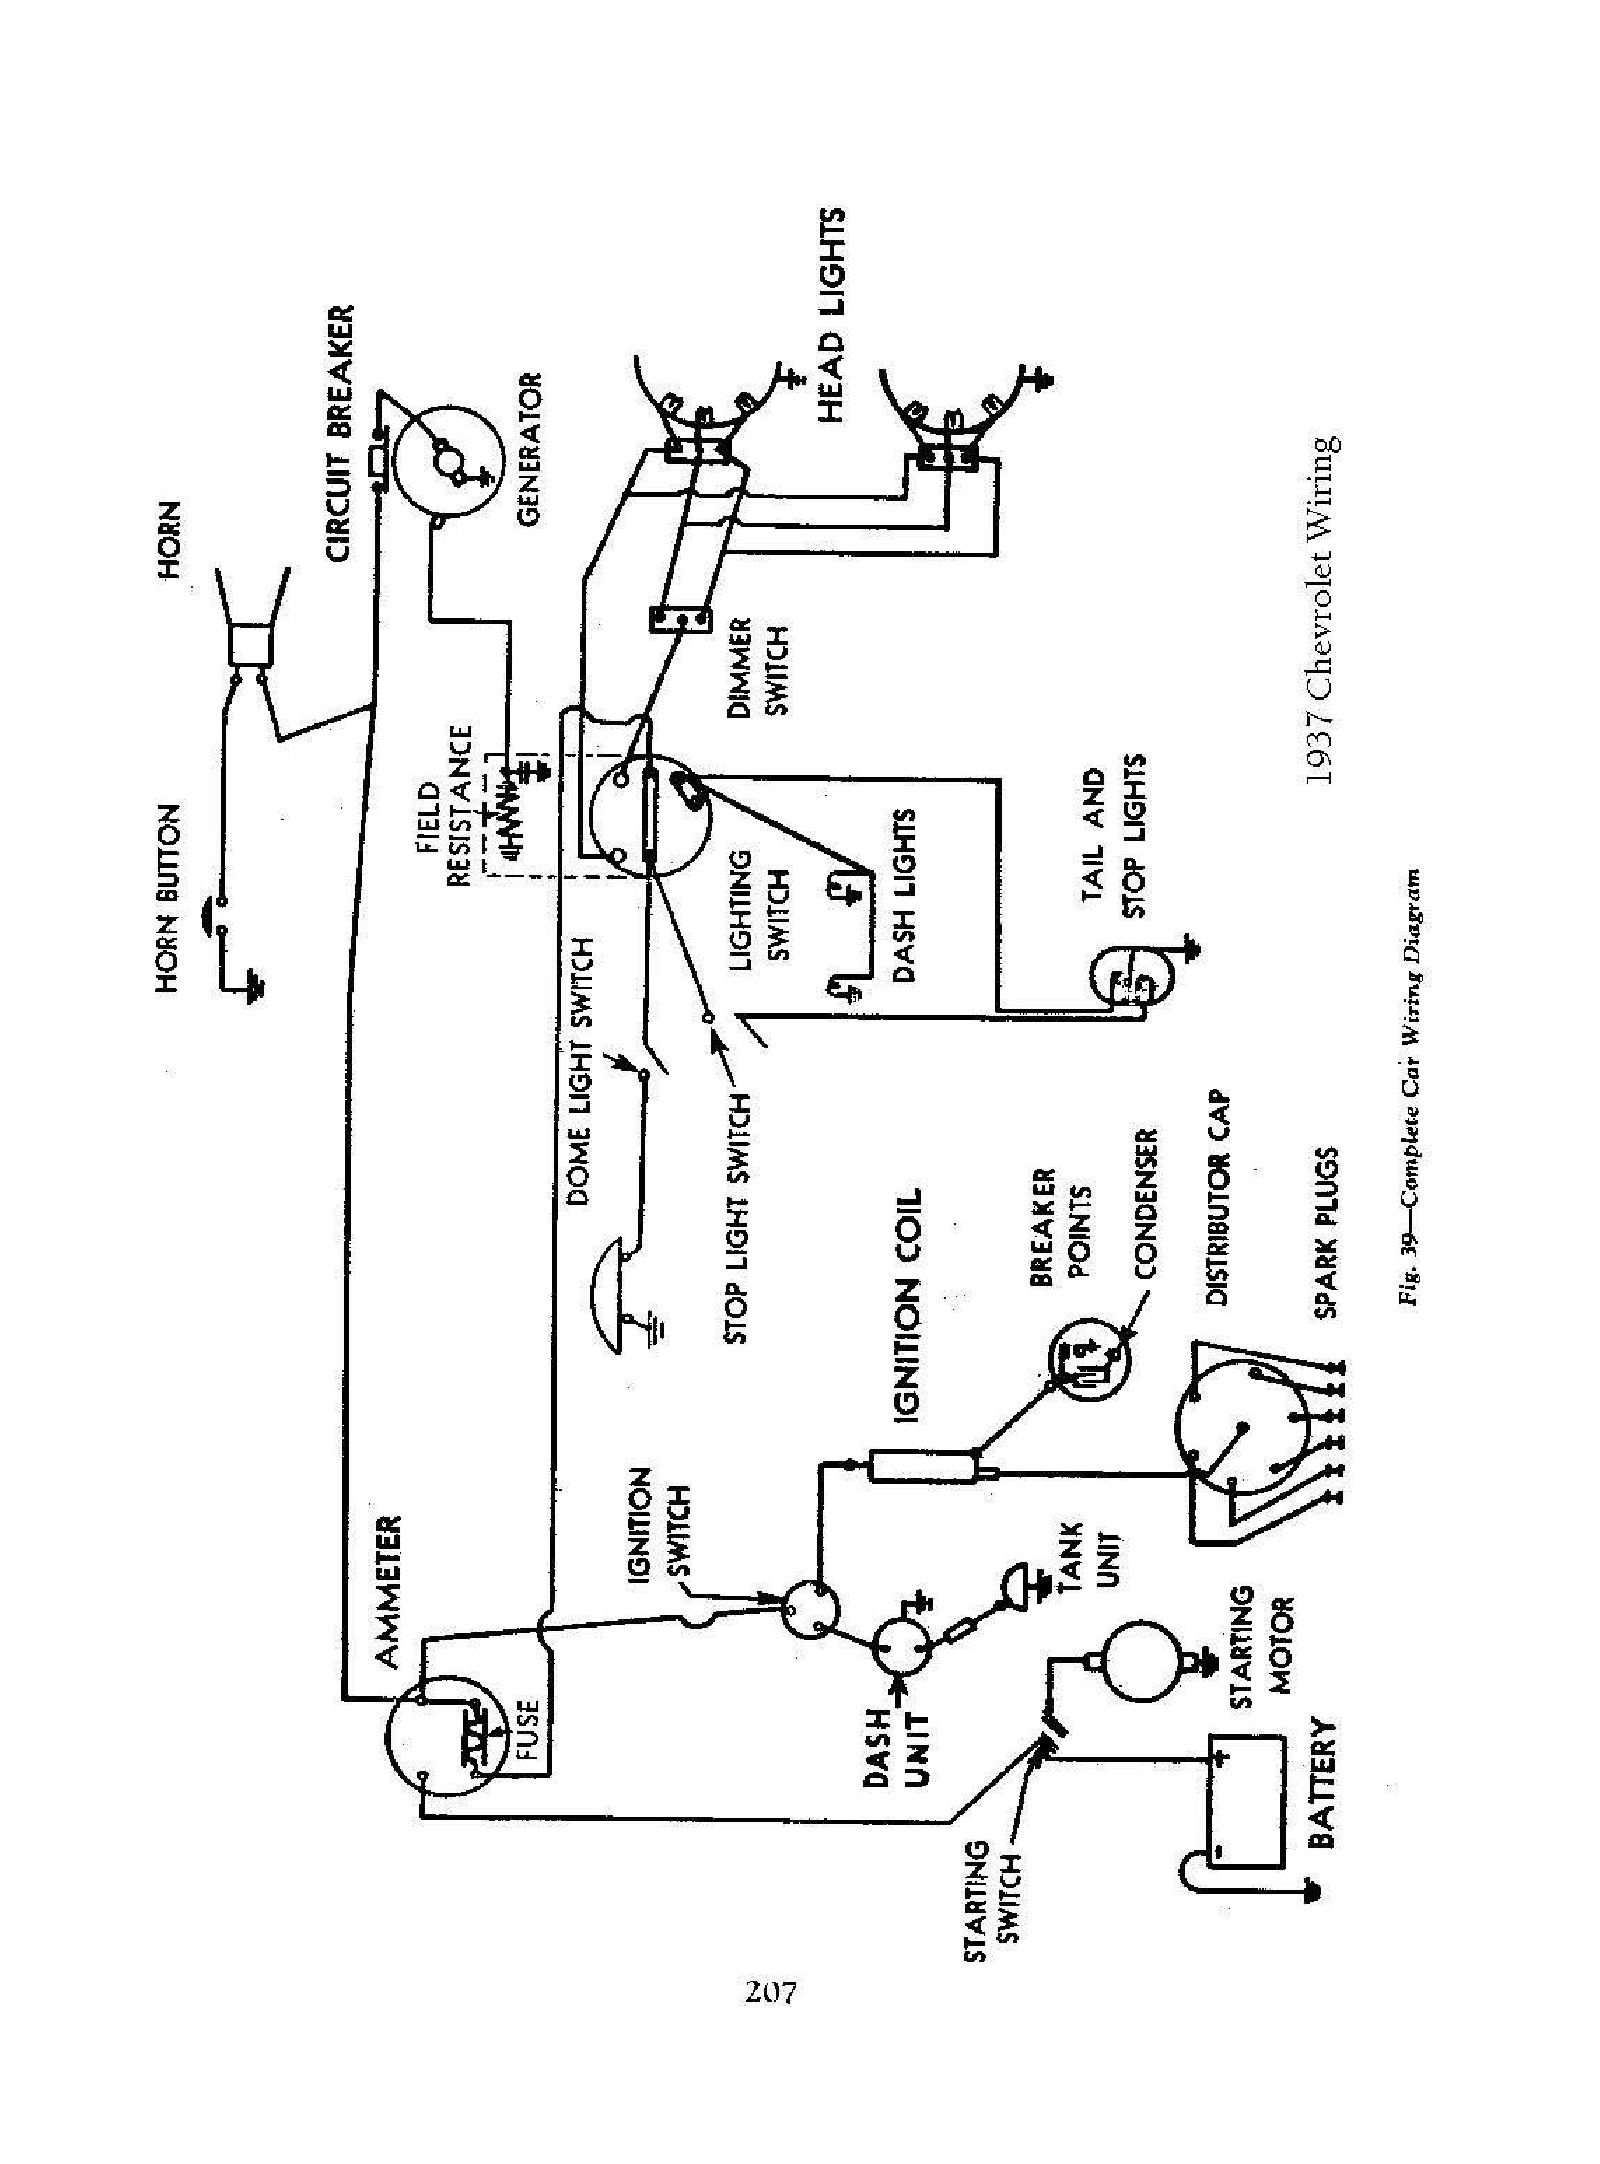 1955 Ford Generator Wire Diagram Wiring Library